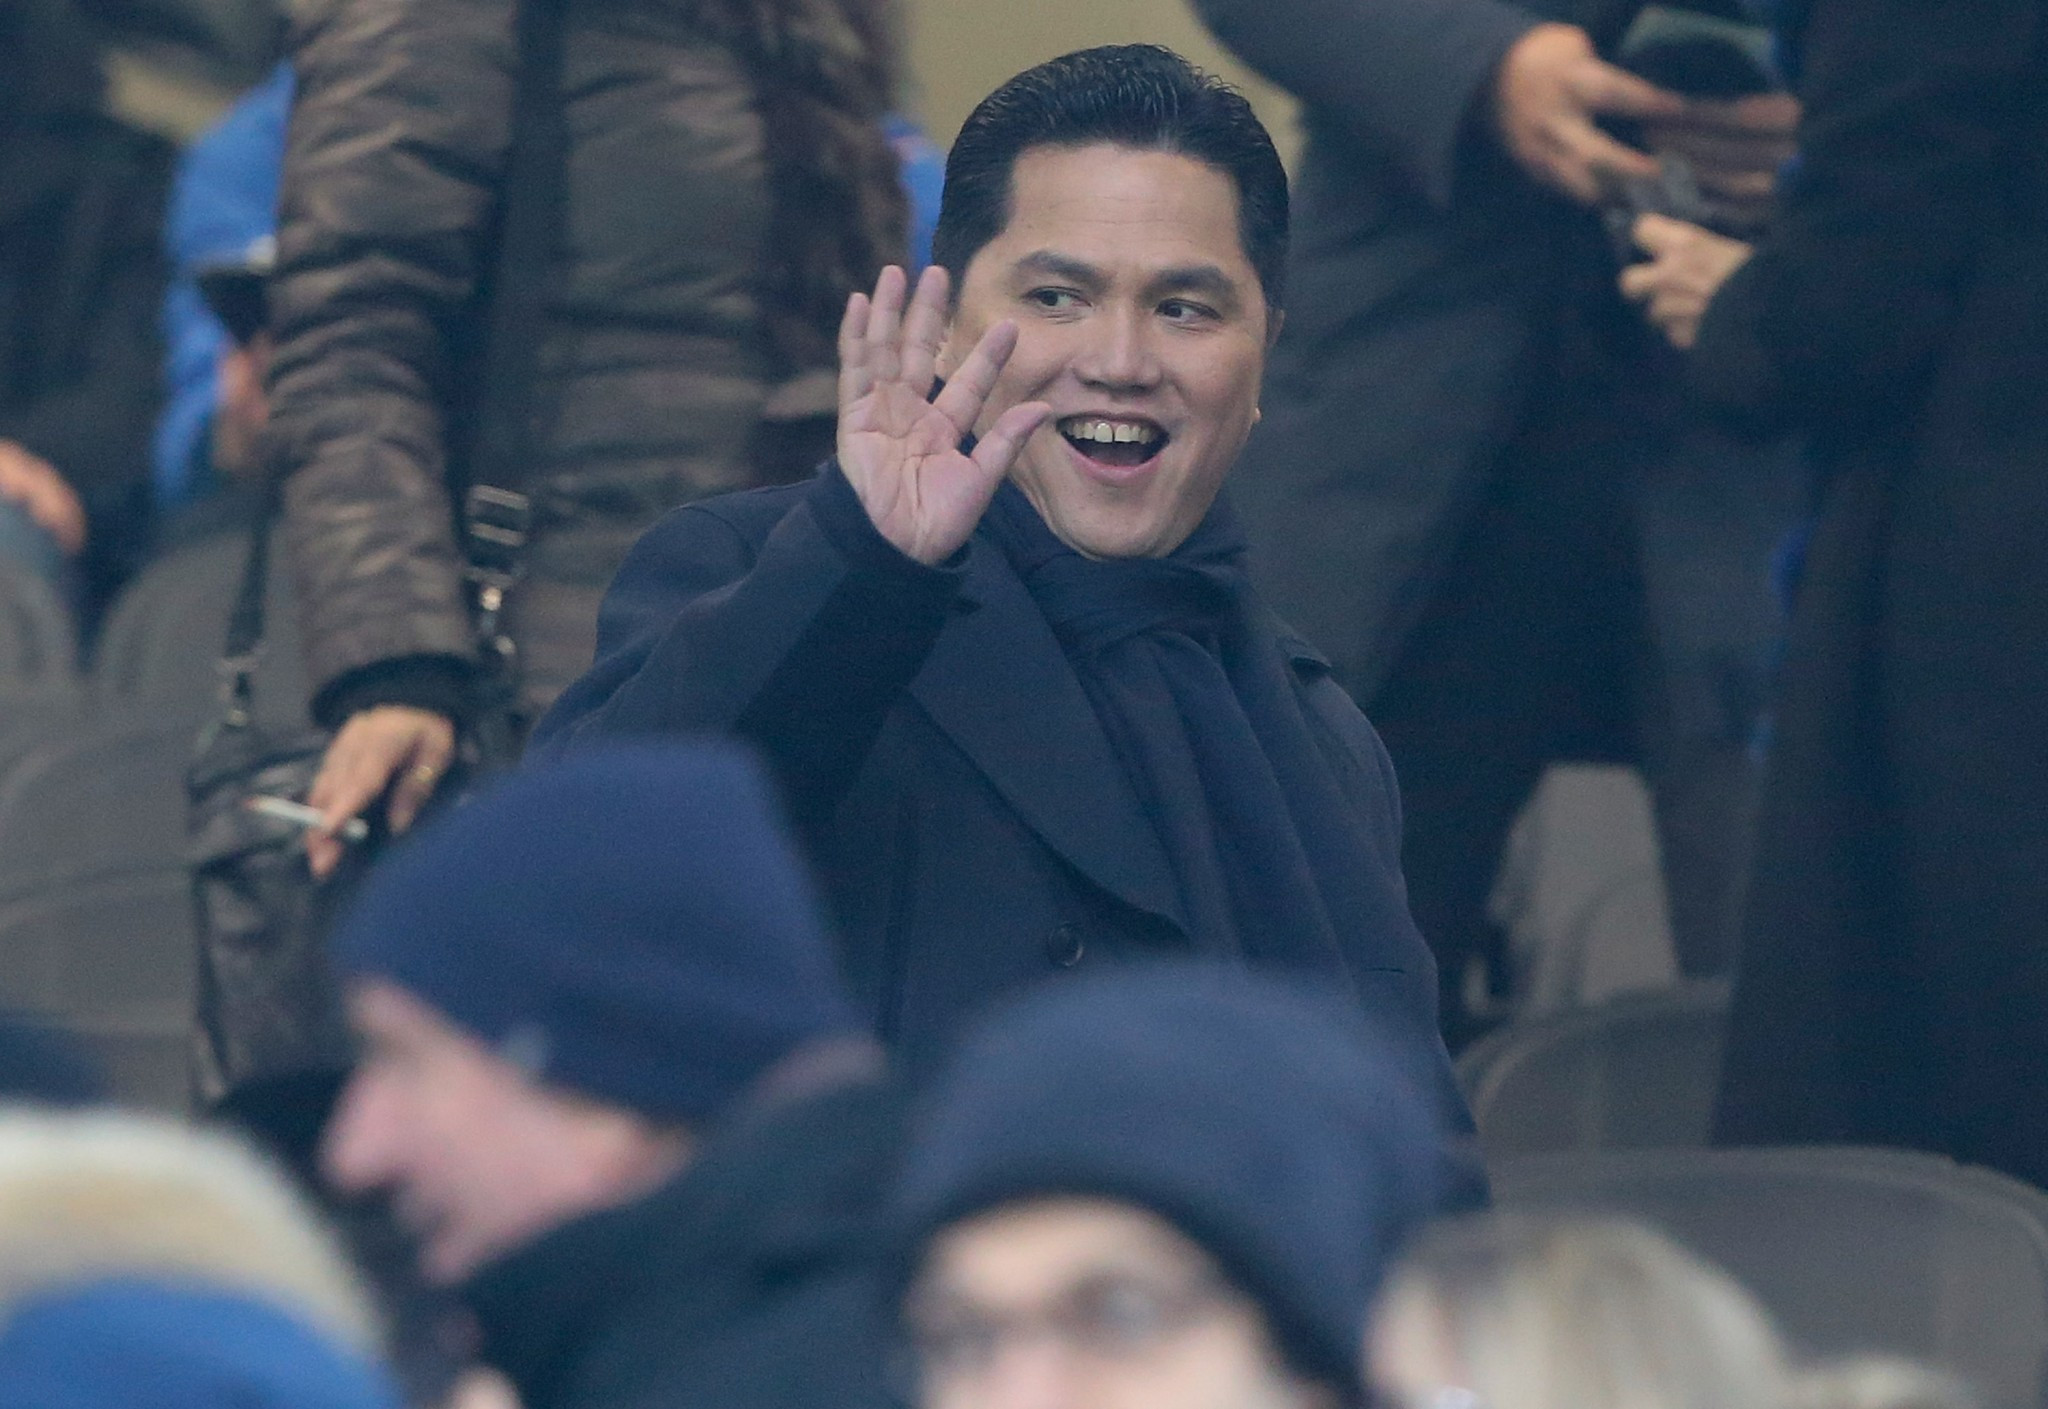 Erick Thohir believes everything will be ready for the 2018 Asian Games, which start in exactly a year's time ©Getty Images